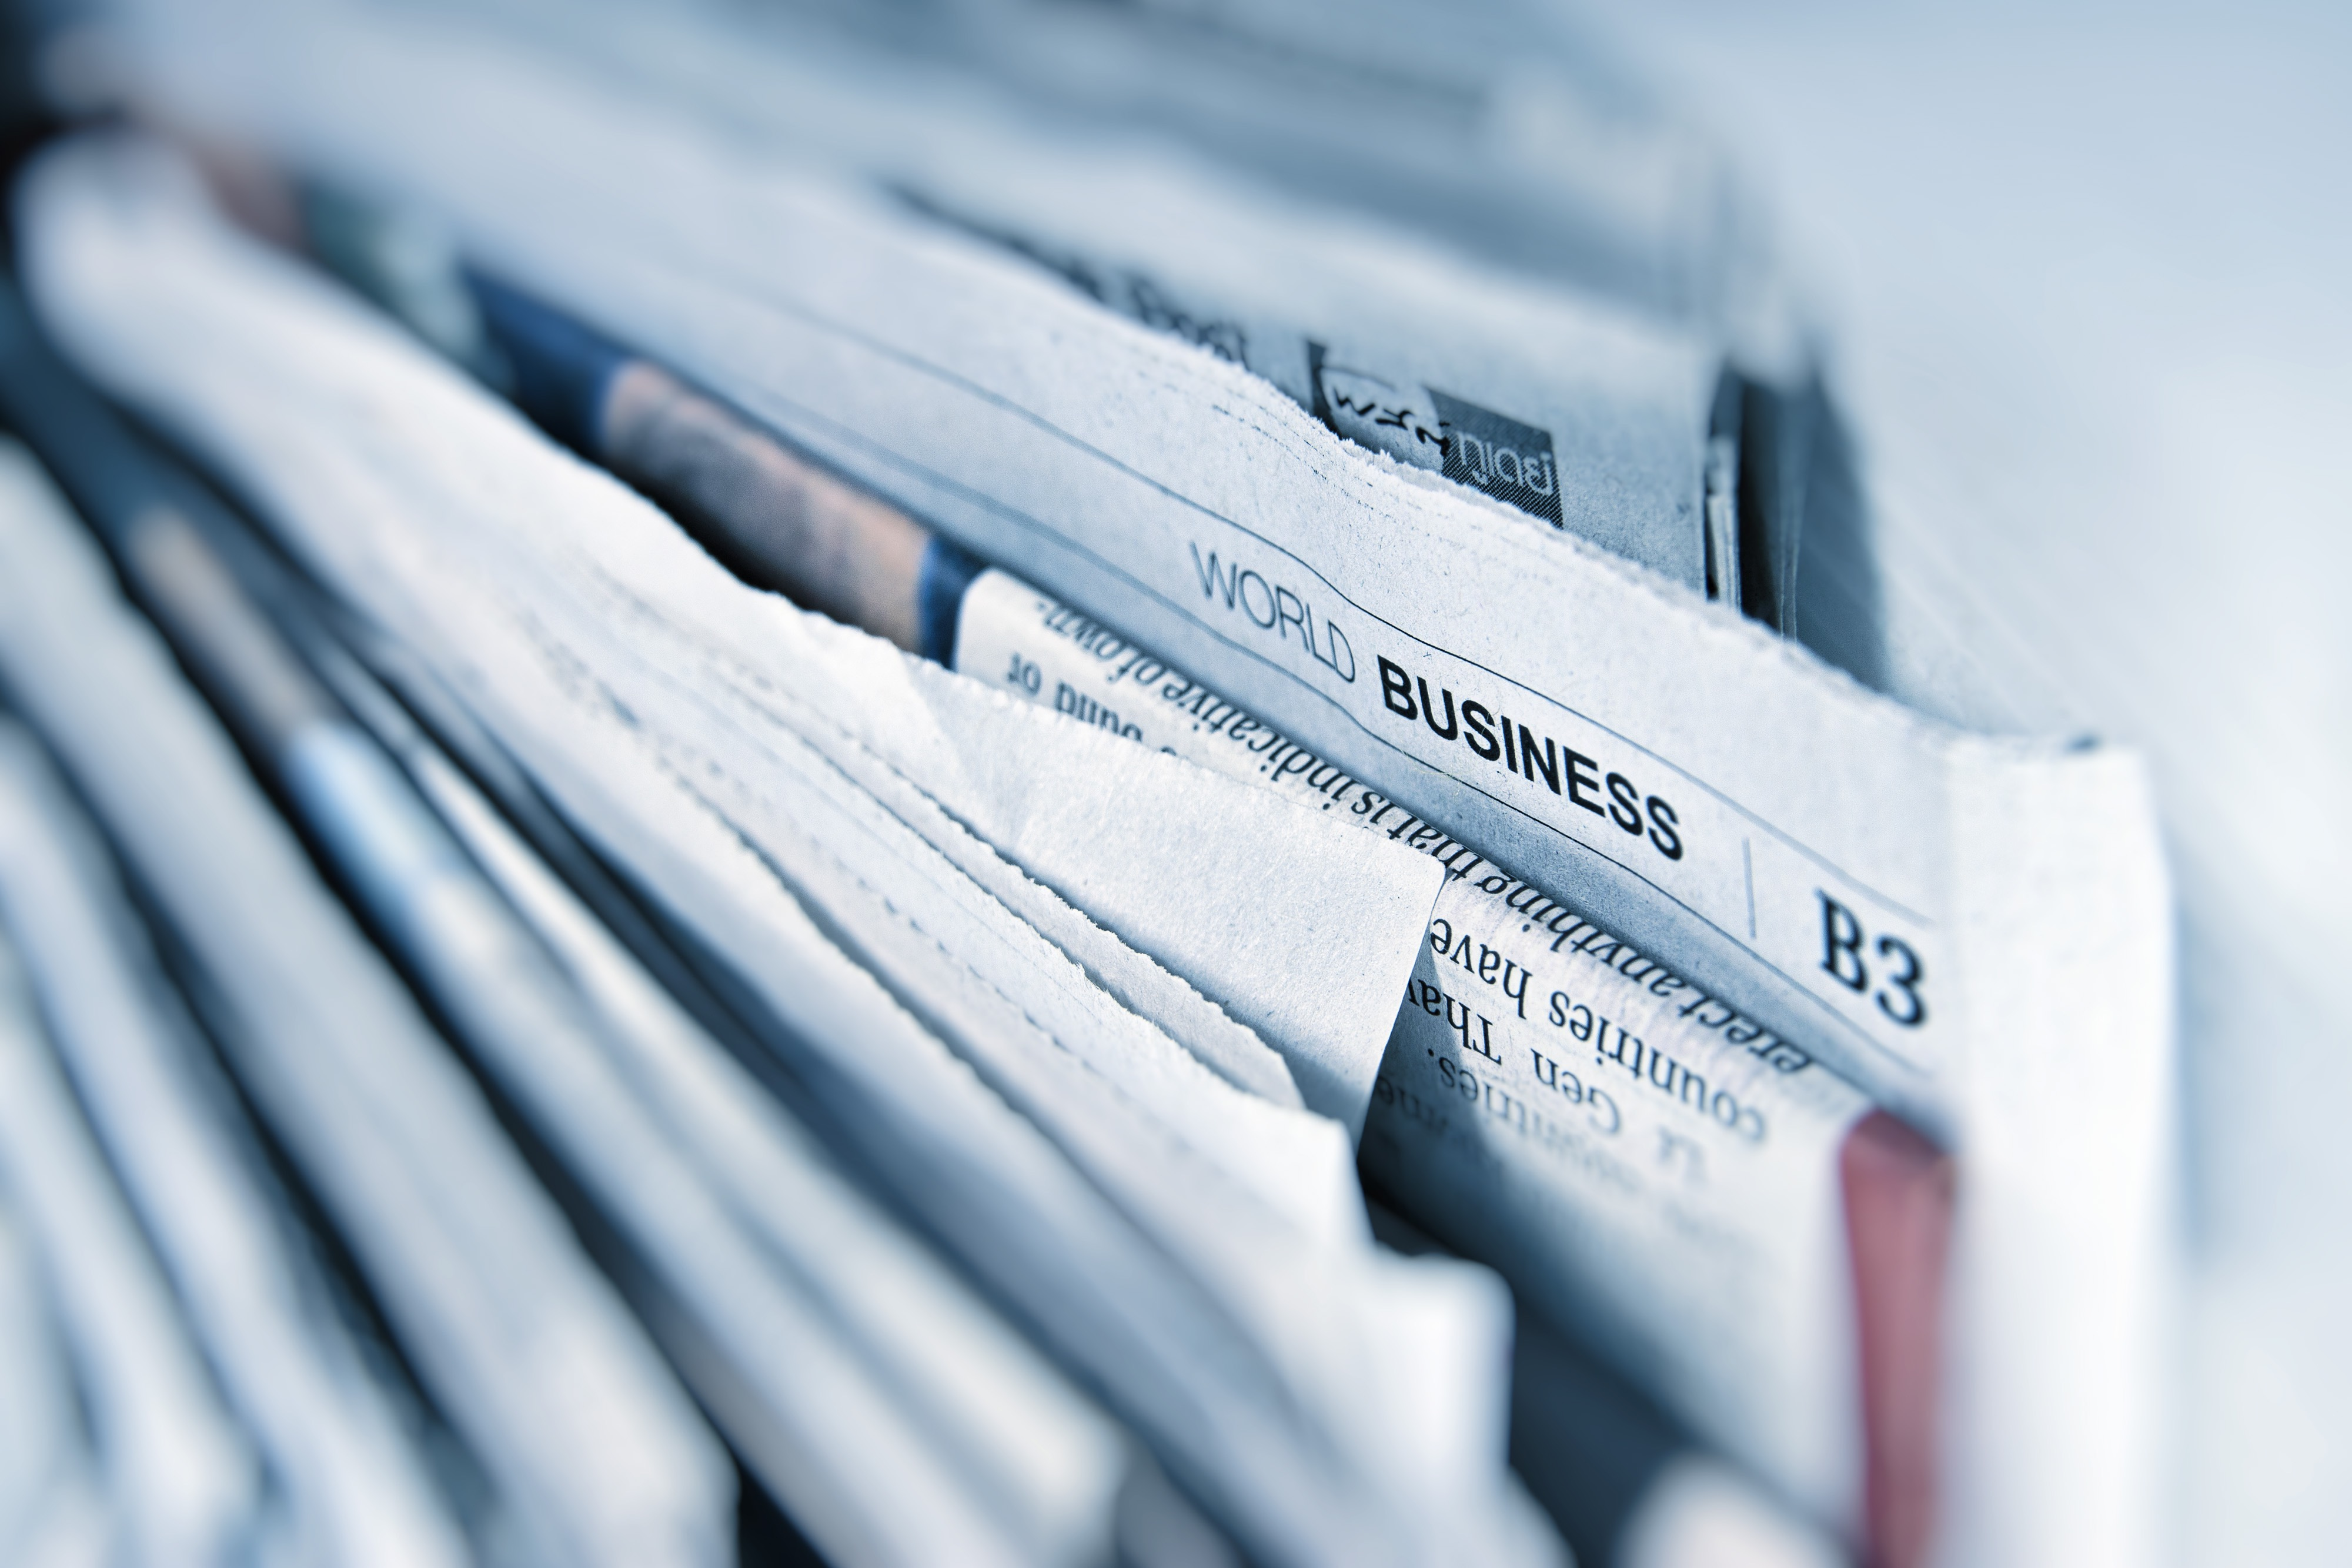 Business newspaper article